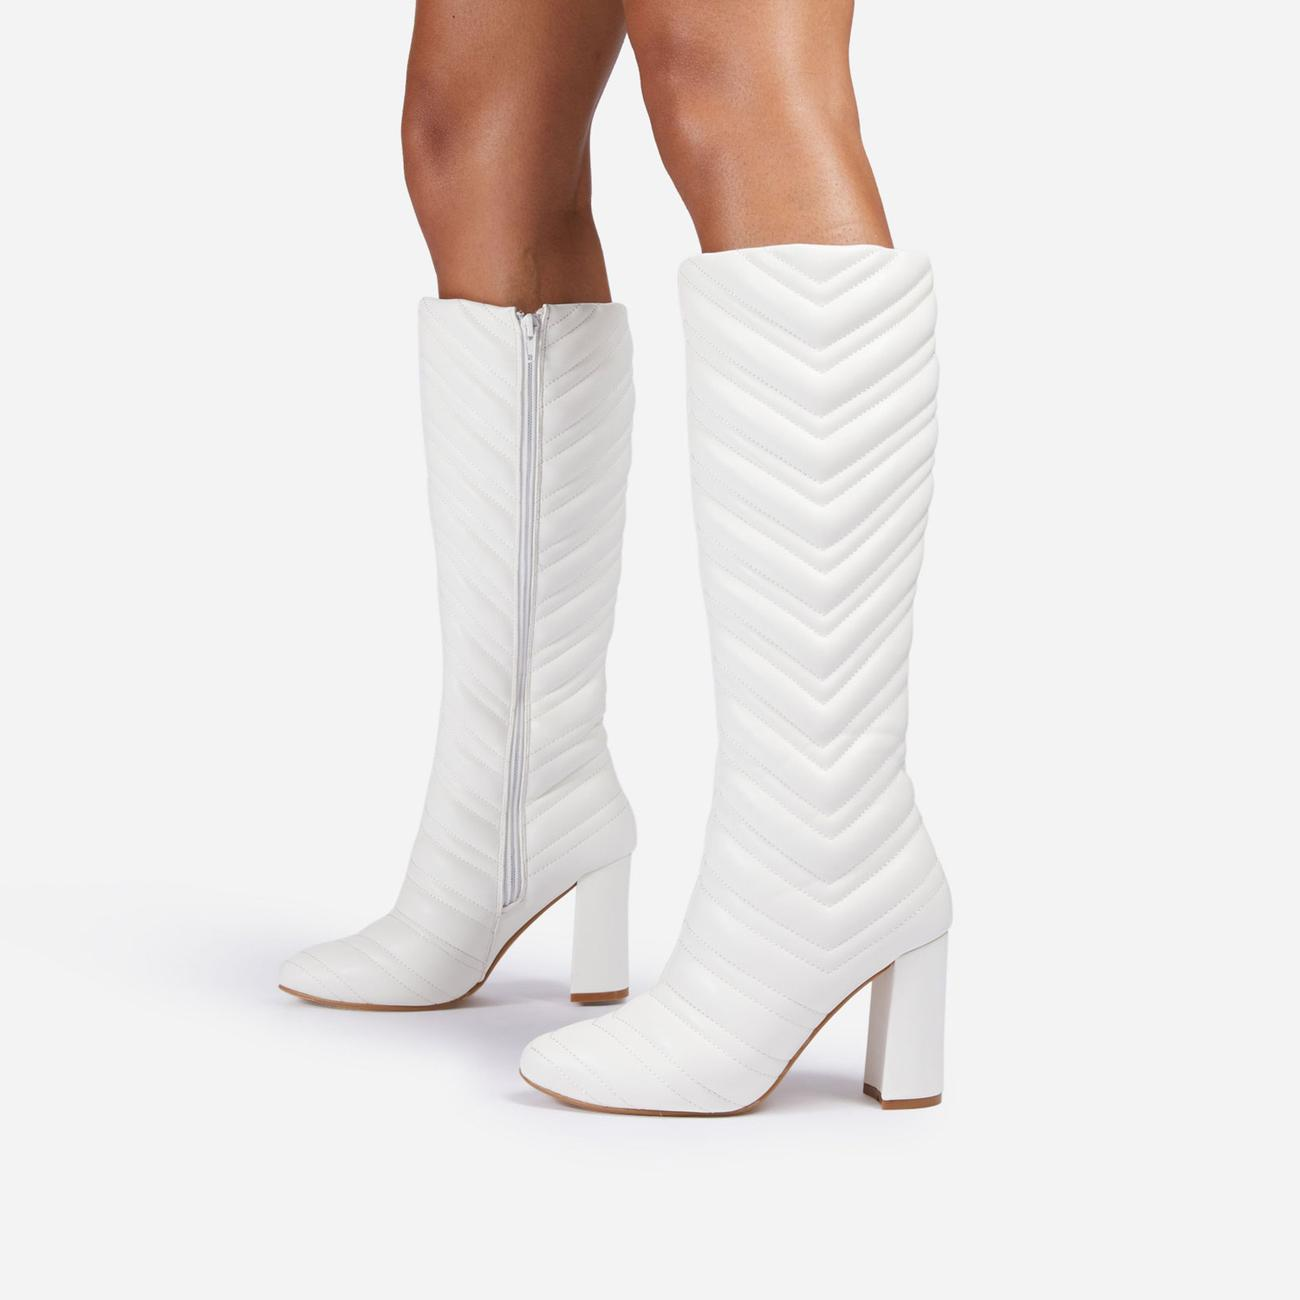 New-Goals Stitch Detail Block Heel Knee High Long Boot In White Faux Leather